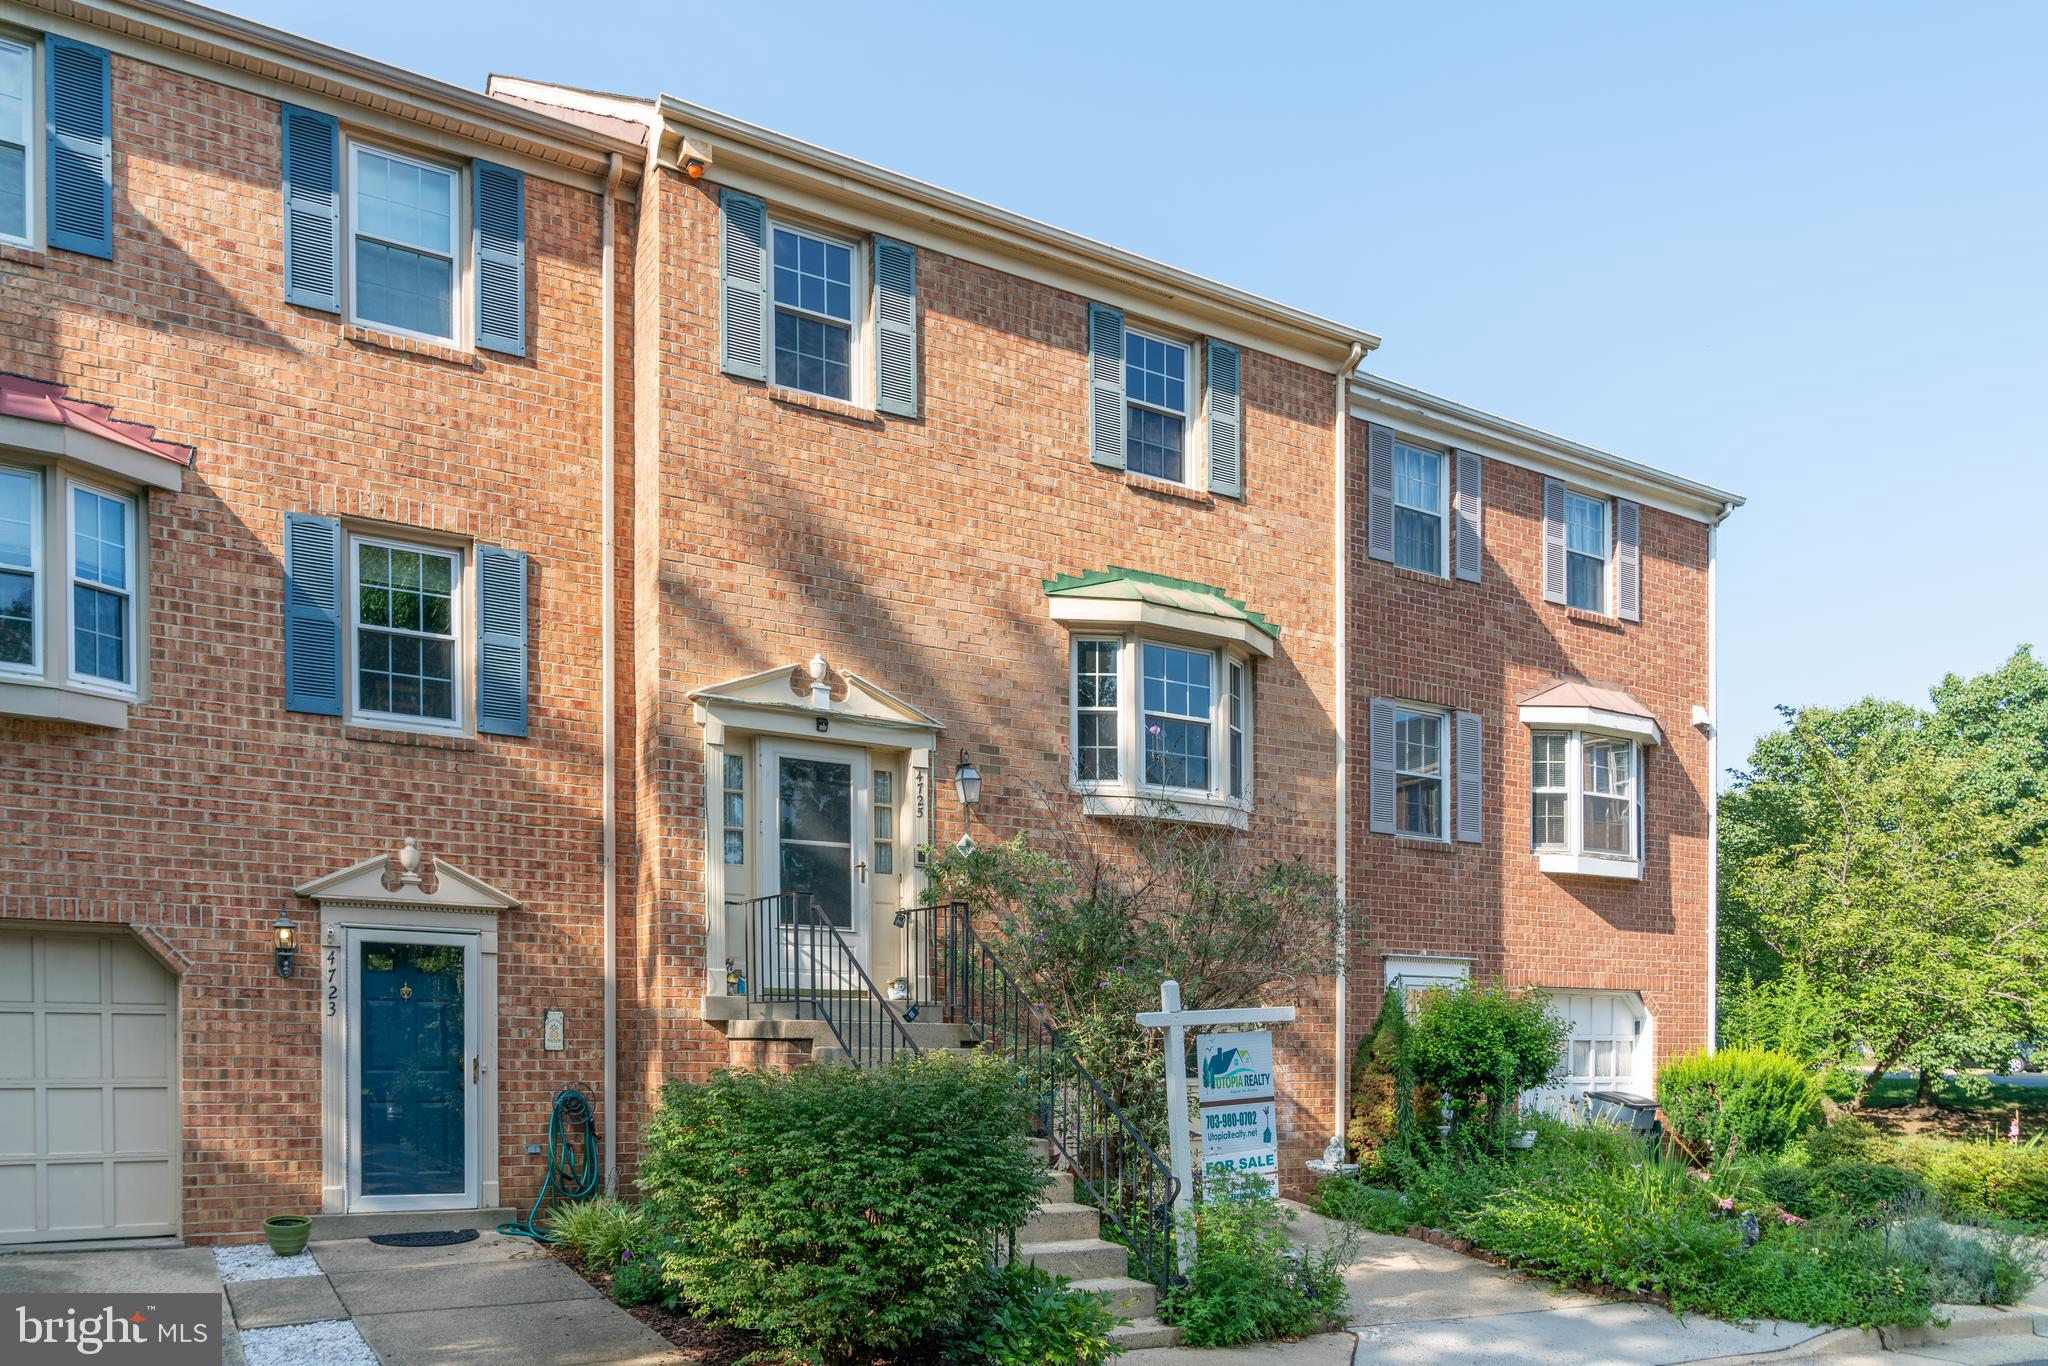 ***price reduced  *** Cozy 3 Level Brick, Townhome, Conveniently located between Alexandria and Annandale; 3 BR/3.5 Baths; Hardwood floor on main level, carpet on upper floor and bedrooms, Eat-in kitchen w/Granite Countertops, Dining Room and Living Room. 2018 Roof, windows changed in 2014, water heater in 2017, HVAC in 2016, W/D 3 years old, 5 fans, Walk-out finished basement and fenced back yard. 1 Car Garage. Close to Rt 236, I-395 and I-495 and  Shopping Centers